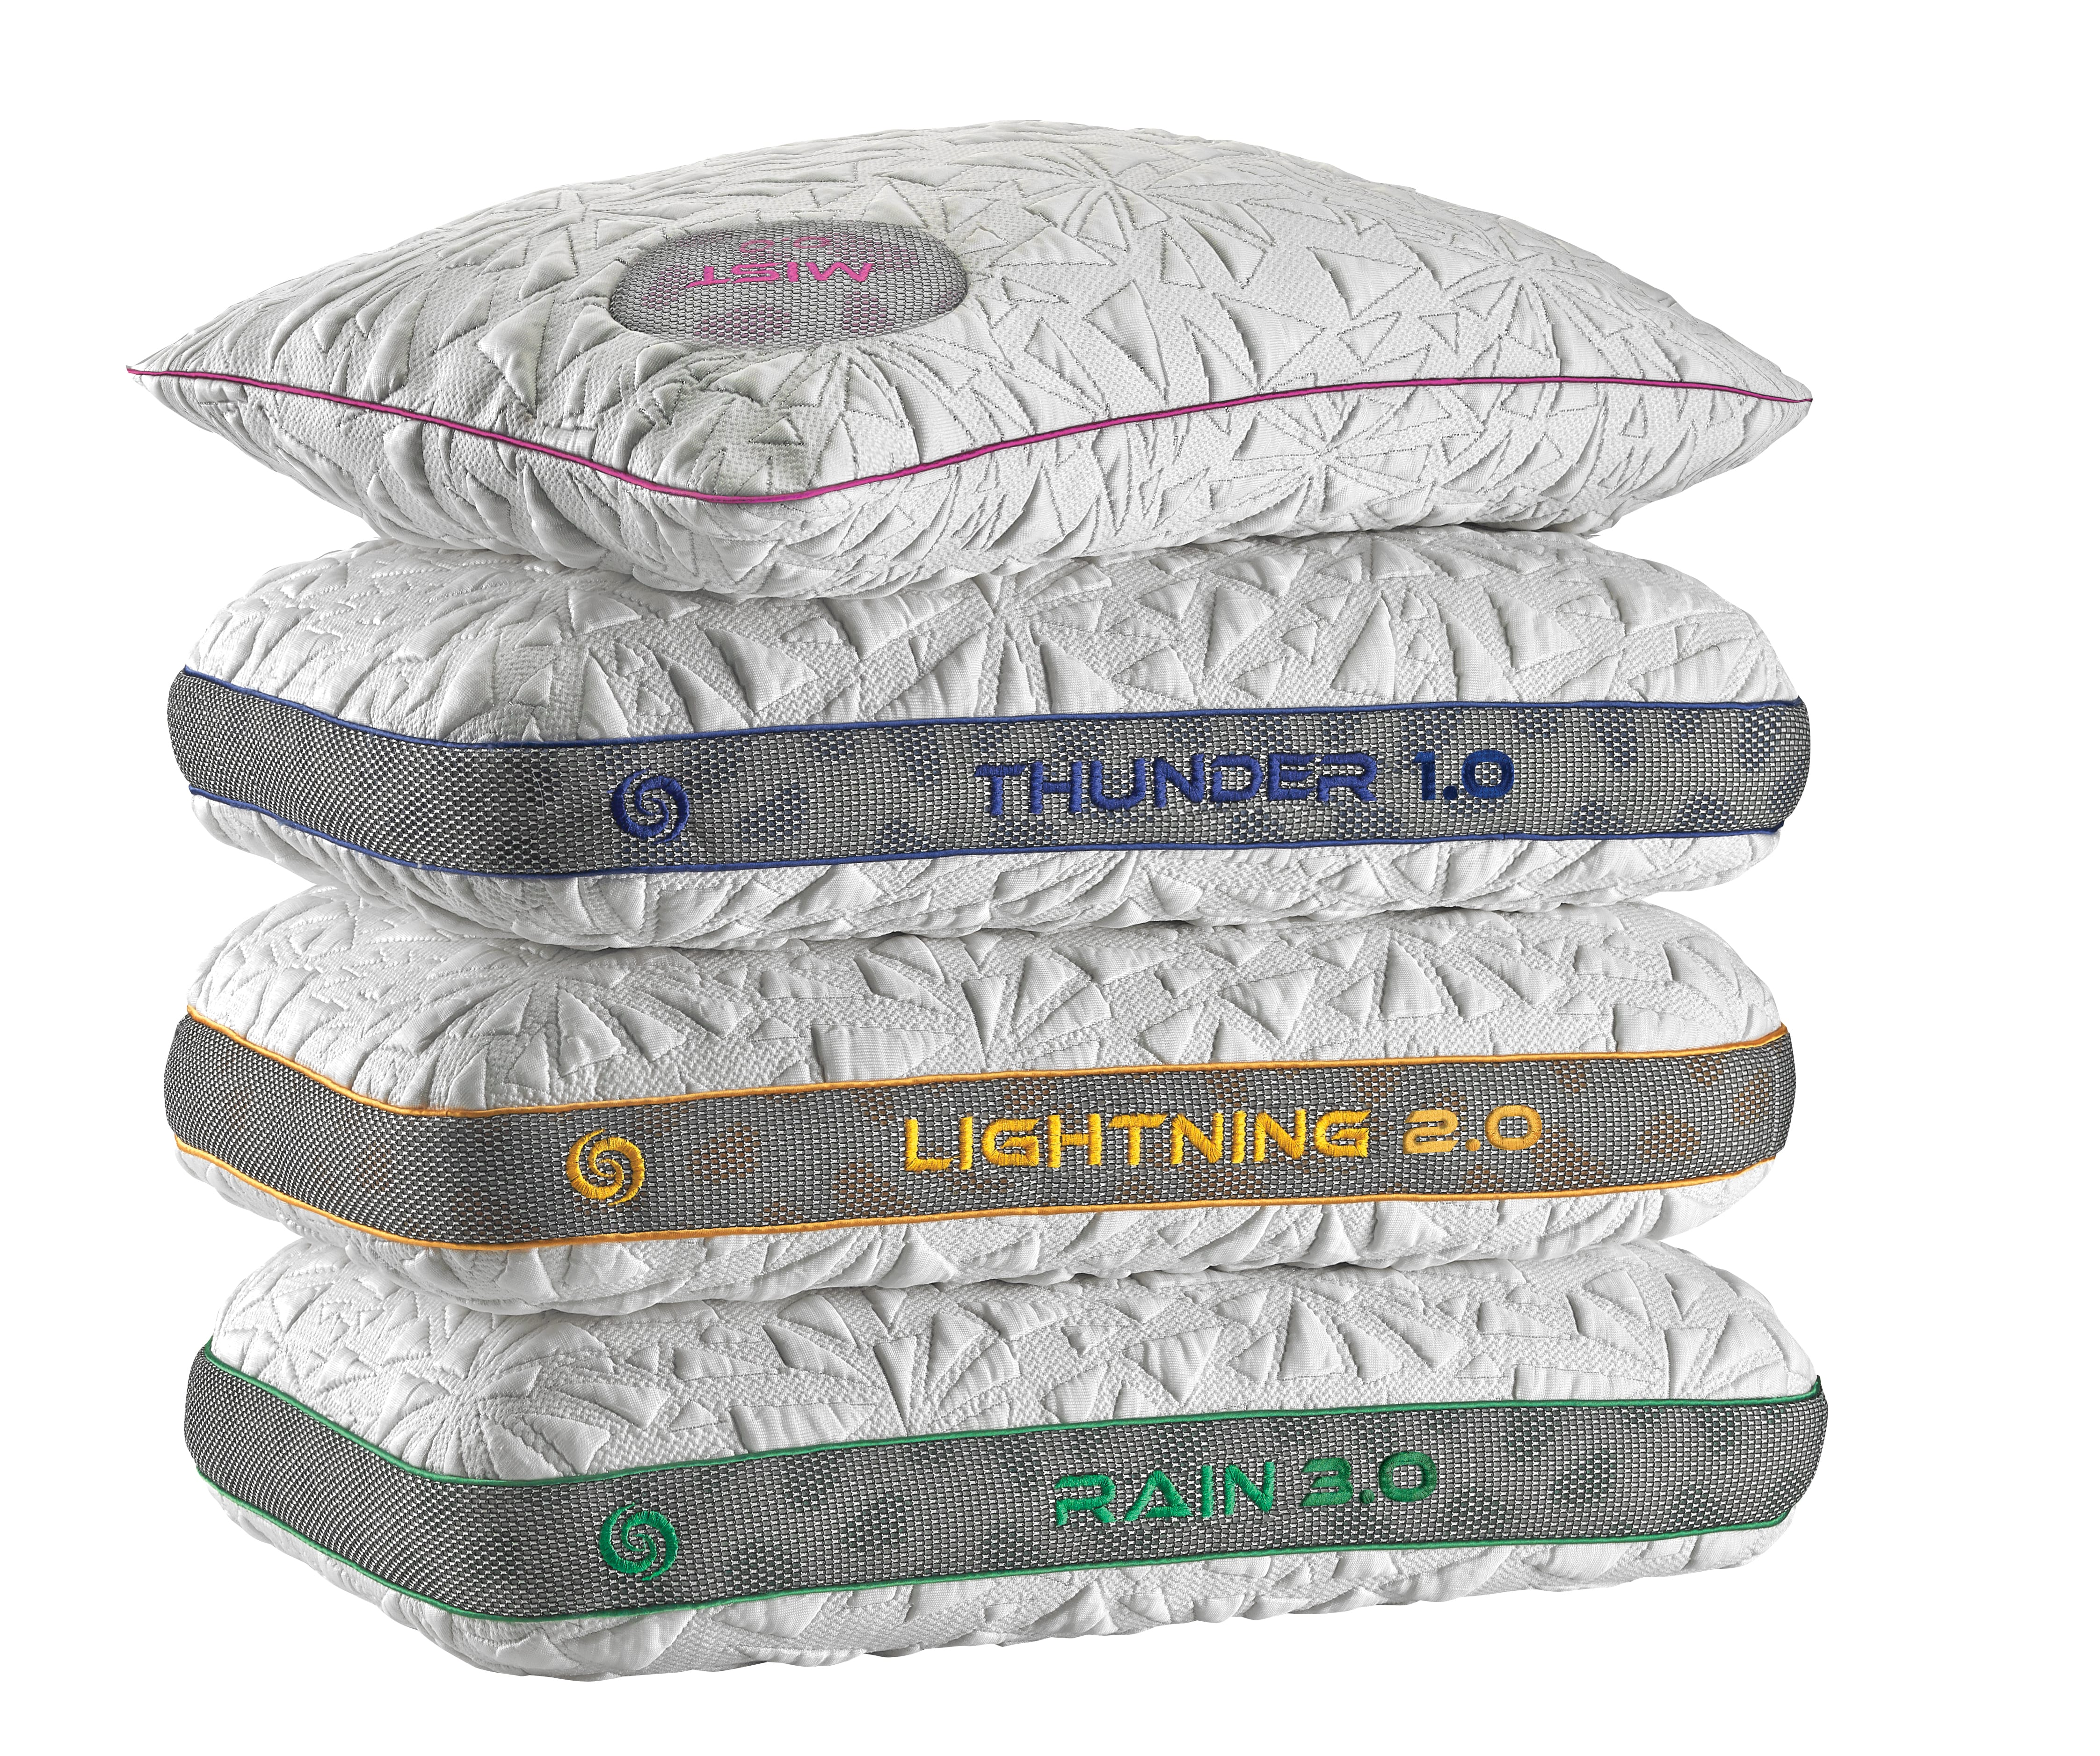 Sleep Natural Mark's Mattress Outlet manufactures our very own line of Sleep Natural mattresses and pillows locally, with industry leading warranties.